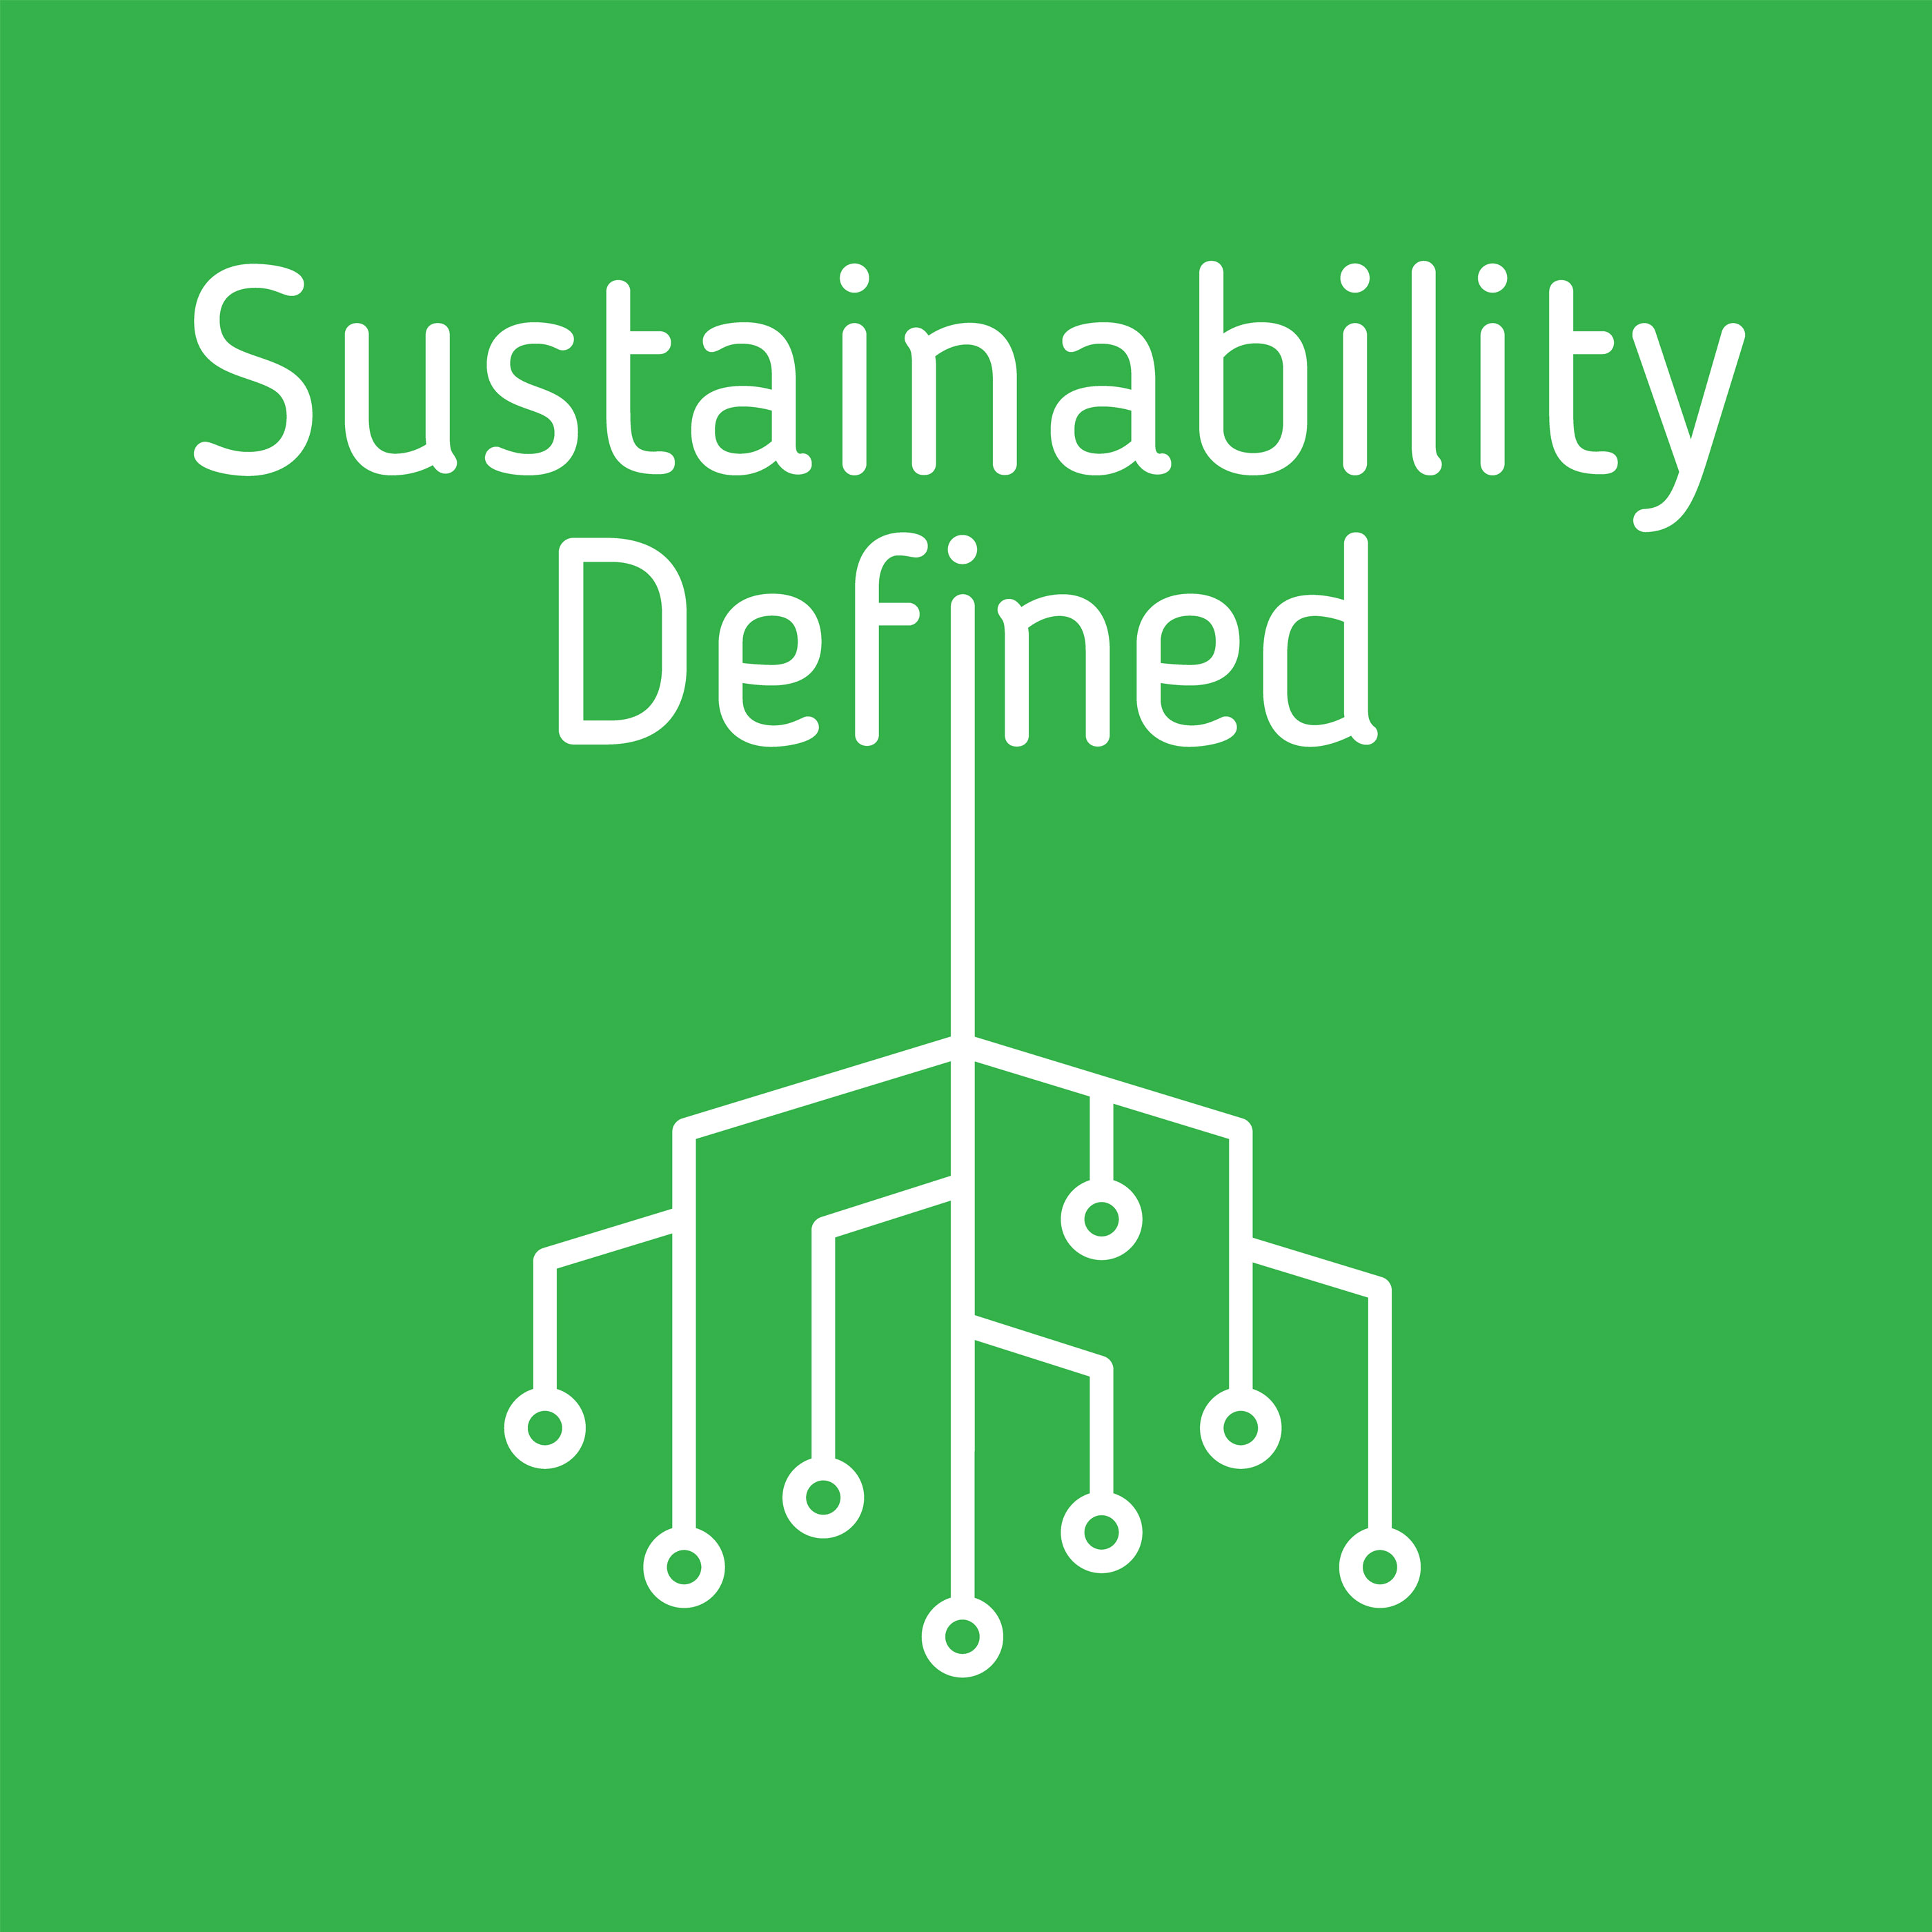 Ep 58: Biotechnology and Sustainability with John Melo and Beth Bannerman (Amyris)